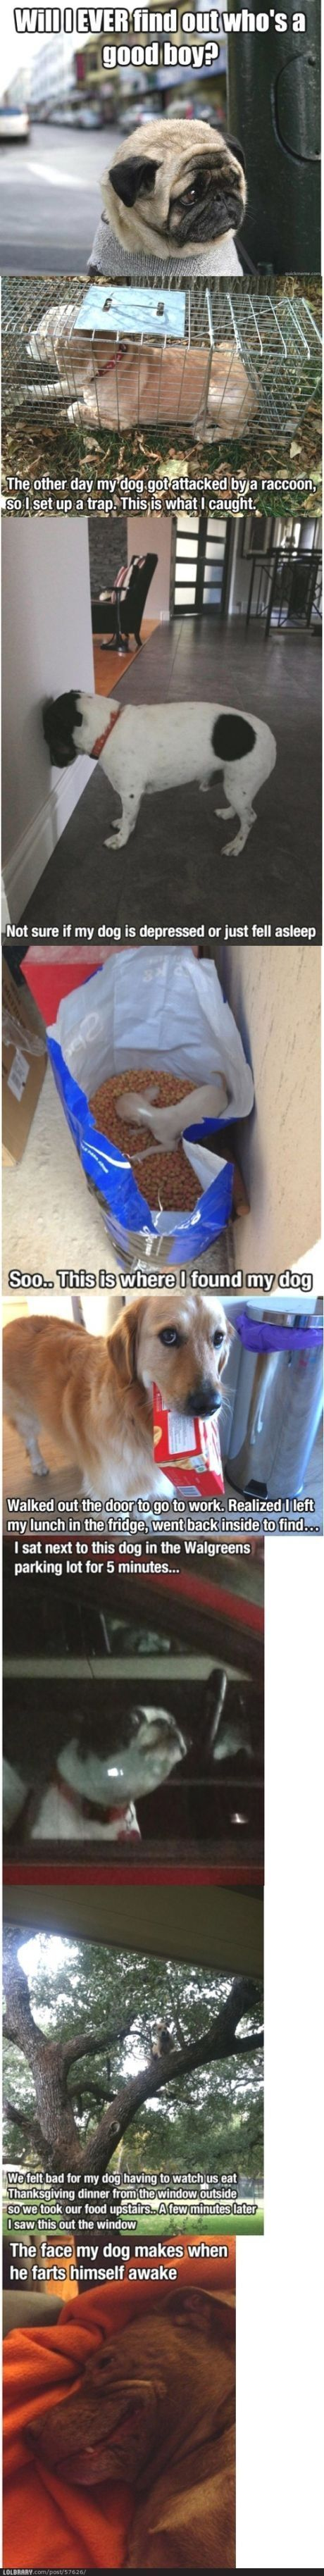 Best Funny Dog Pictures Ideas On Pinterest Cute Dog Pictures - 24 tumblr posts about dogs that are impossible not to laugh at